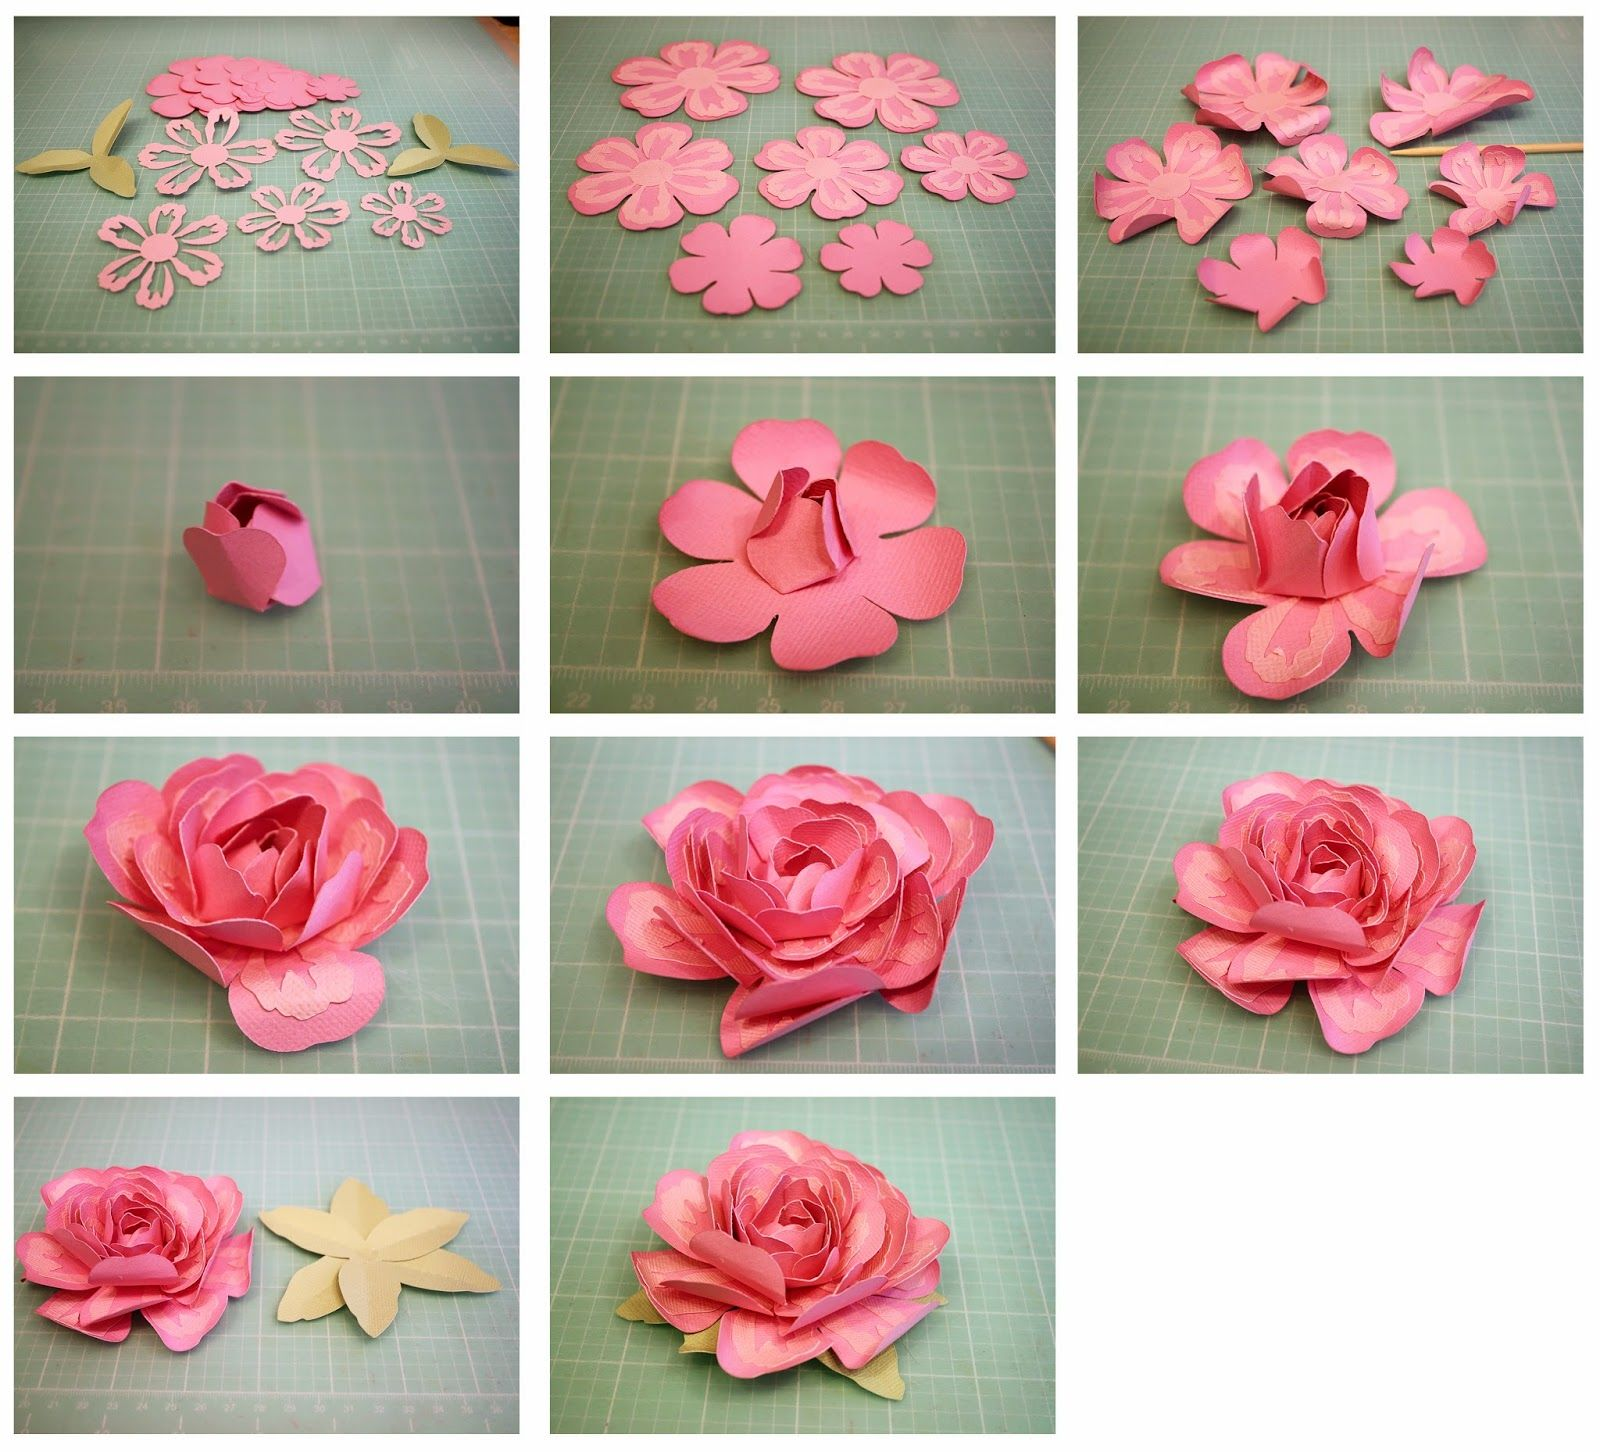 3d layered rose and penstemon paper flowers flowers pinterest 3d layered rose and penstemon paper flowers mightylinksfo